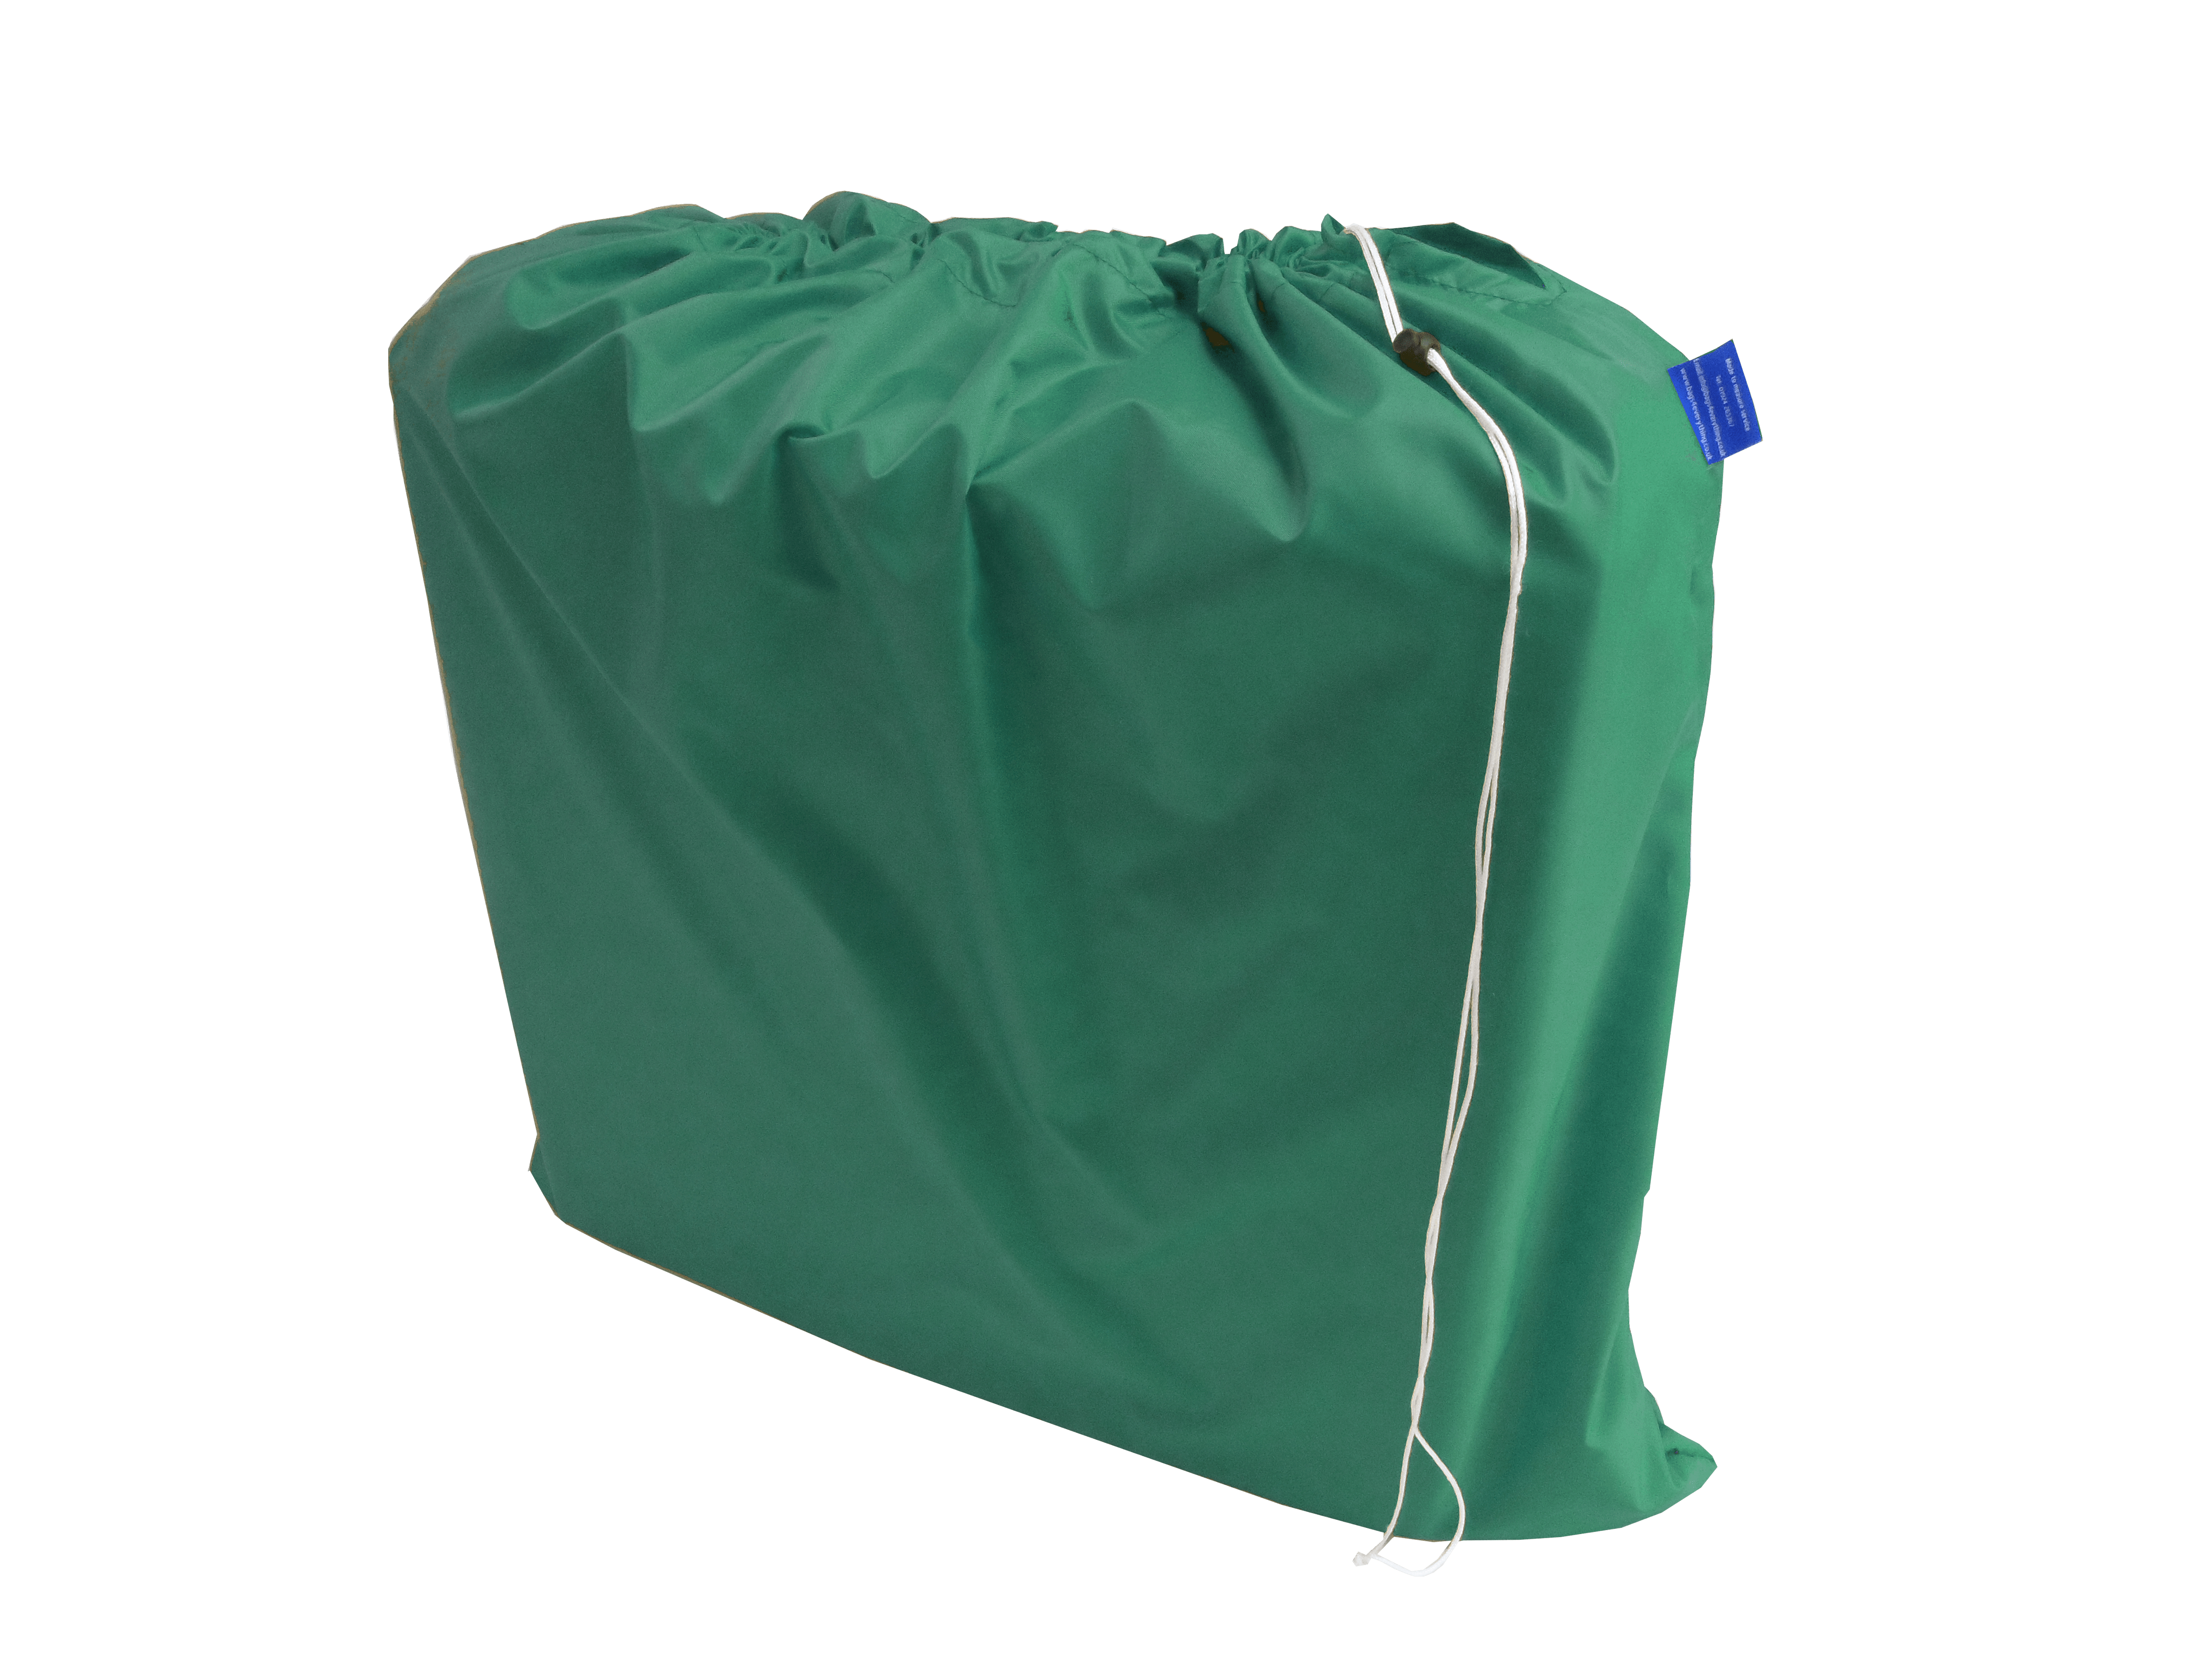 Awning Easy Lock Tile Bag Small